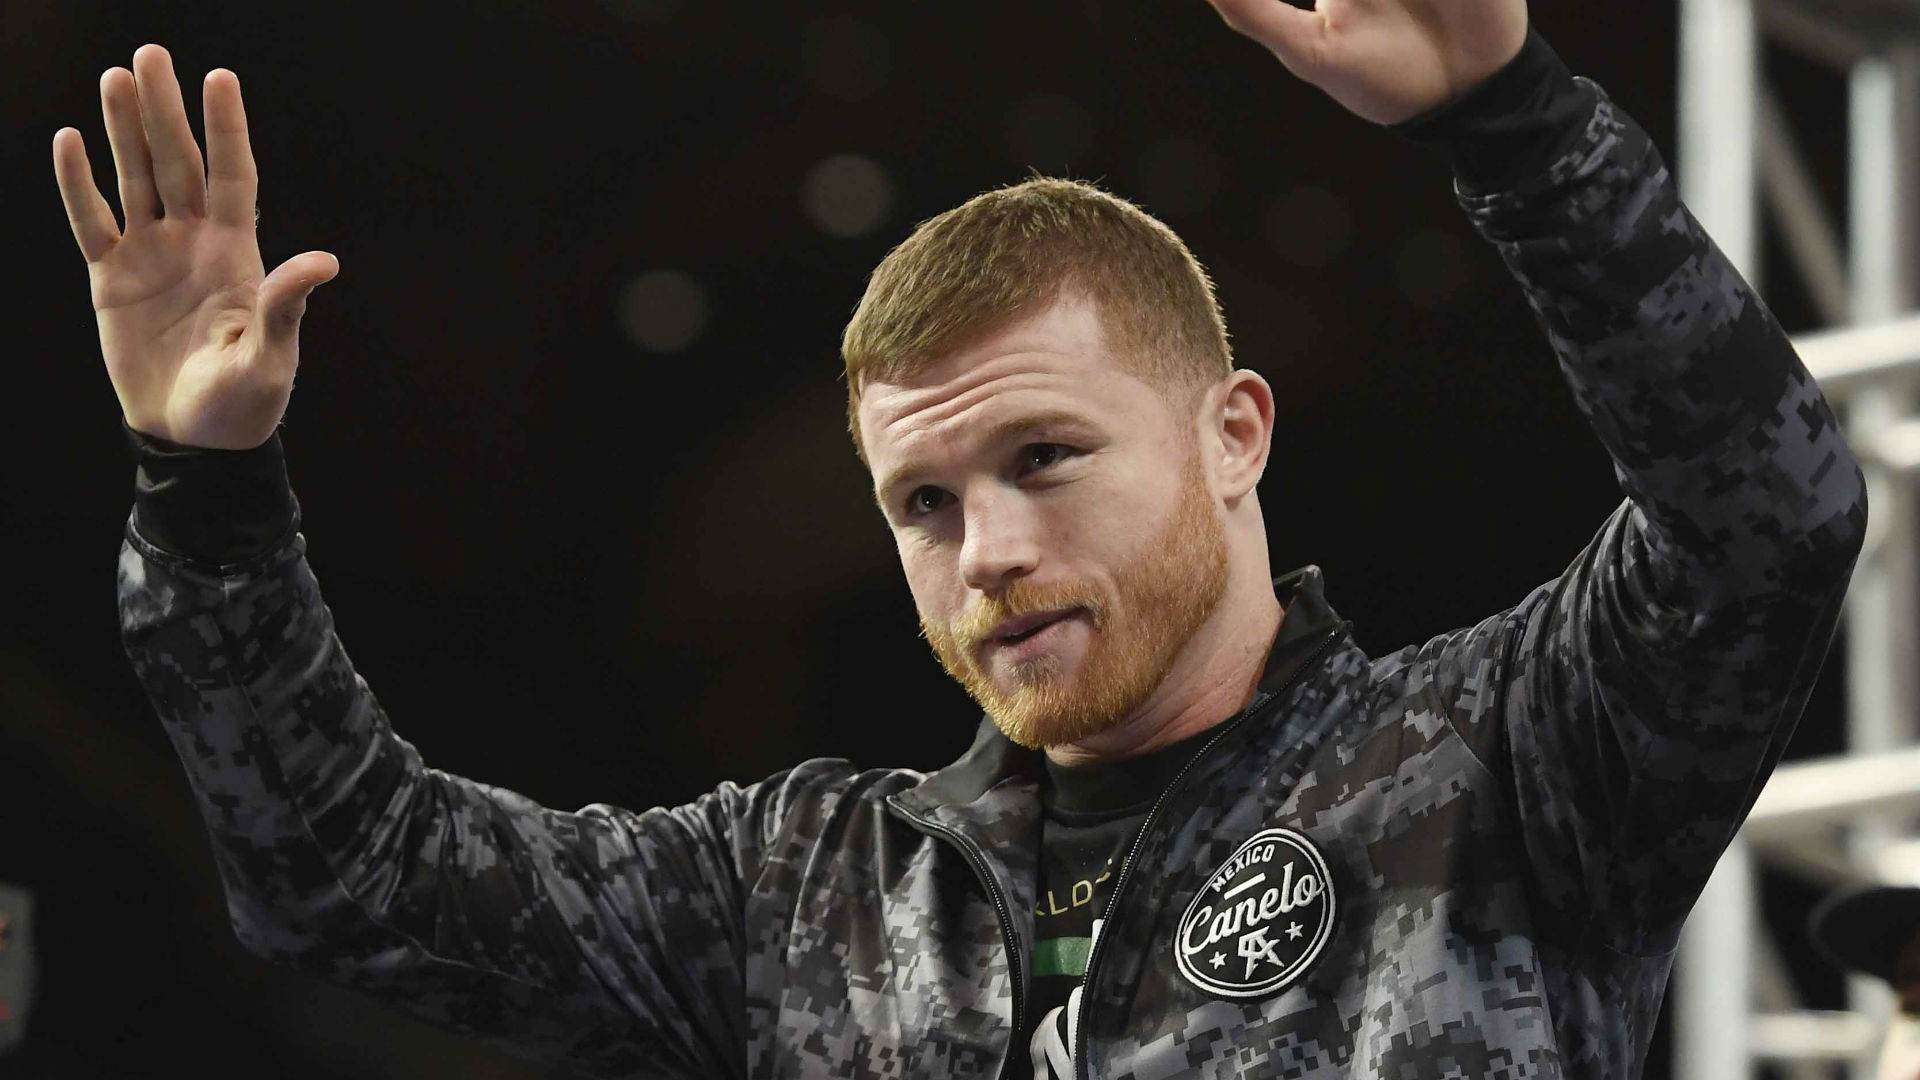 Postponement of Canelo Alvarez's September fight is another puzzling move